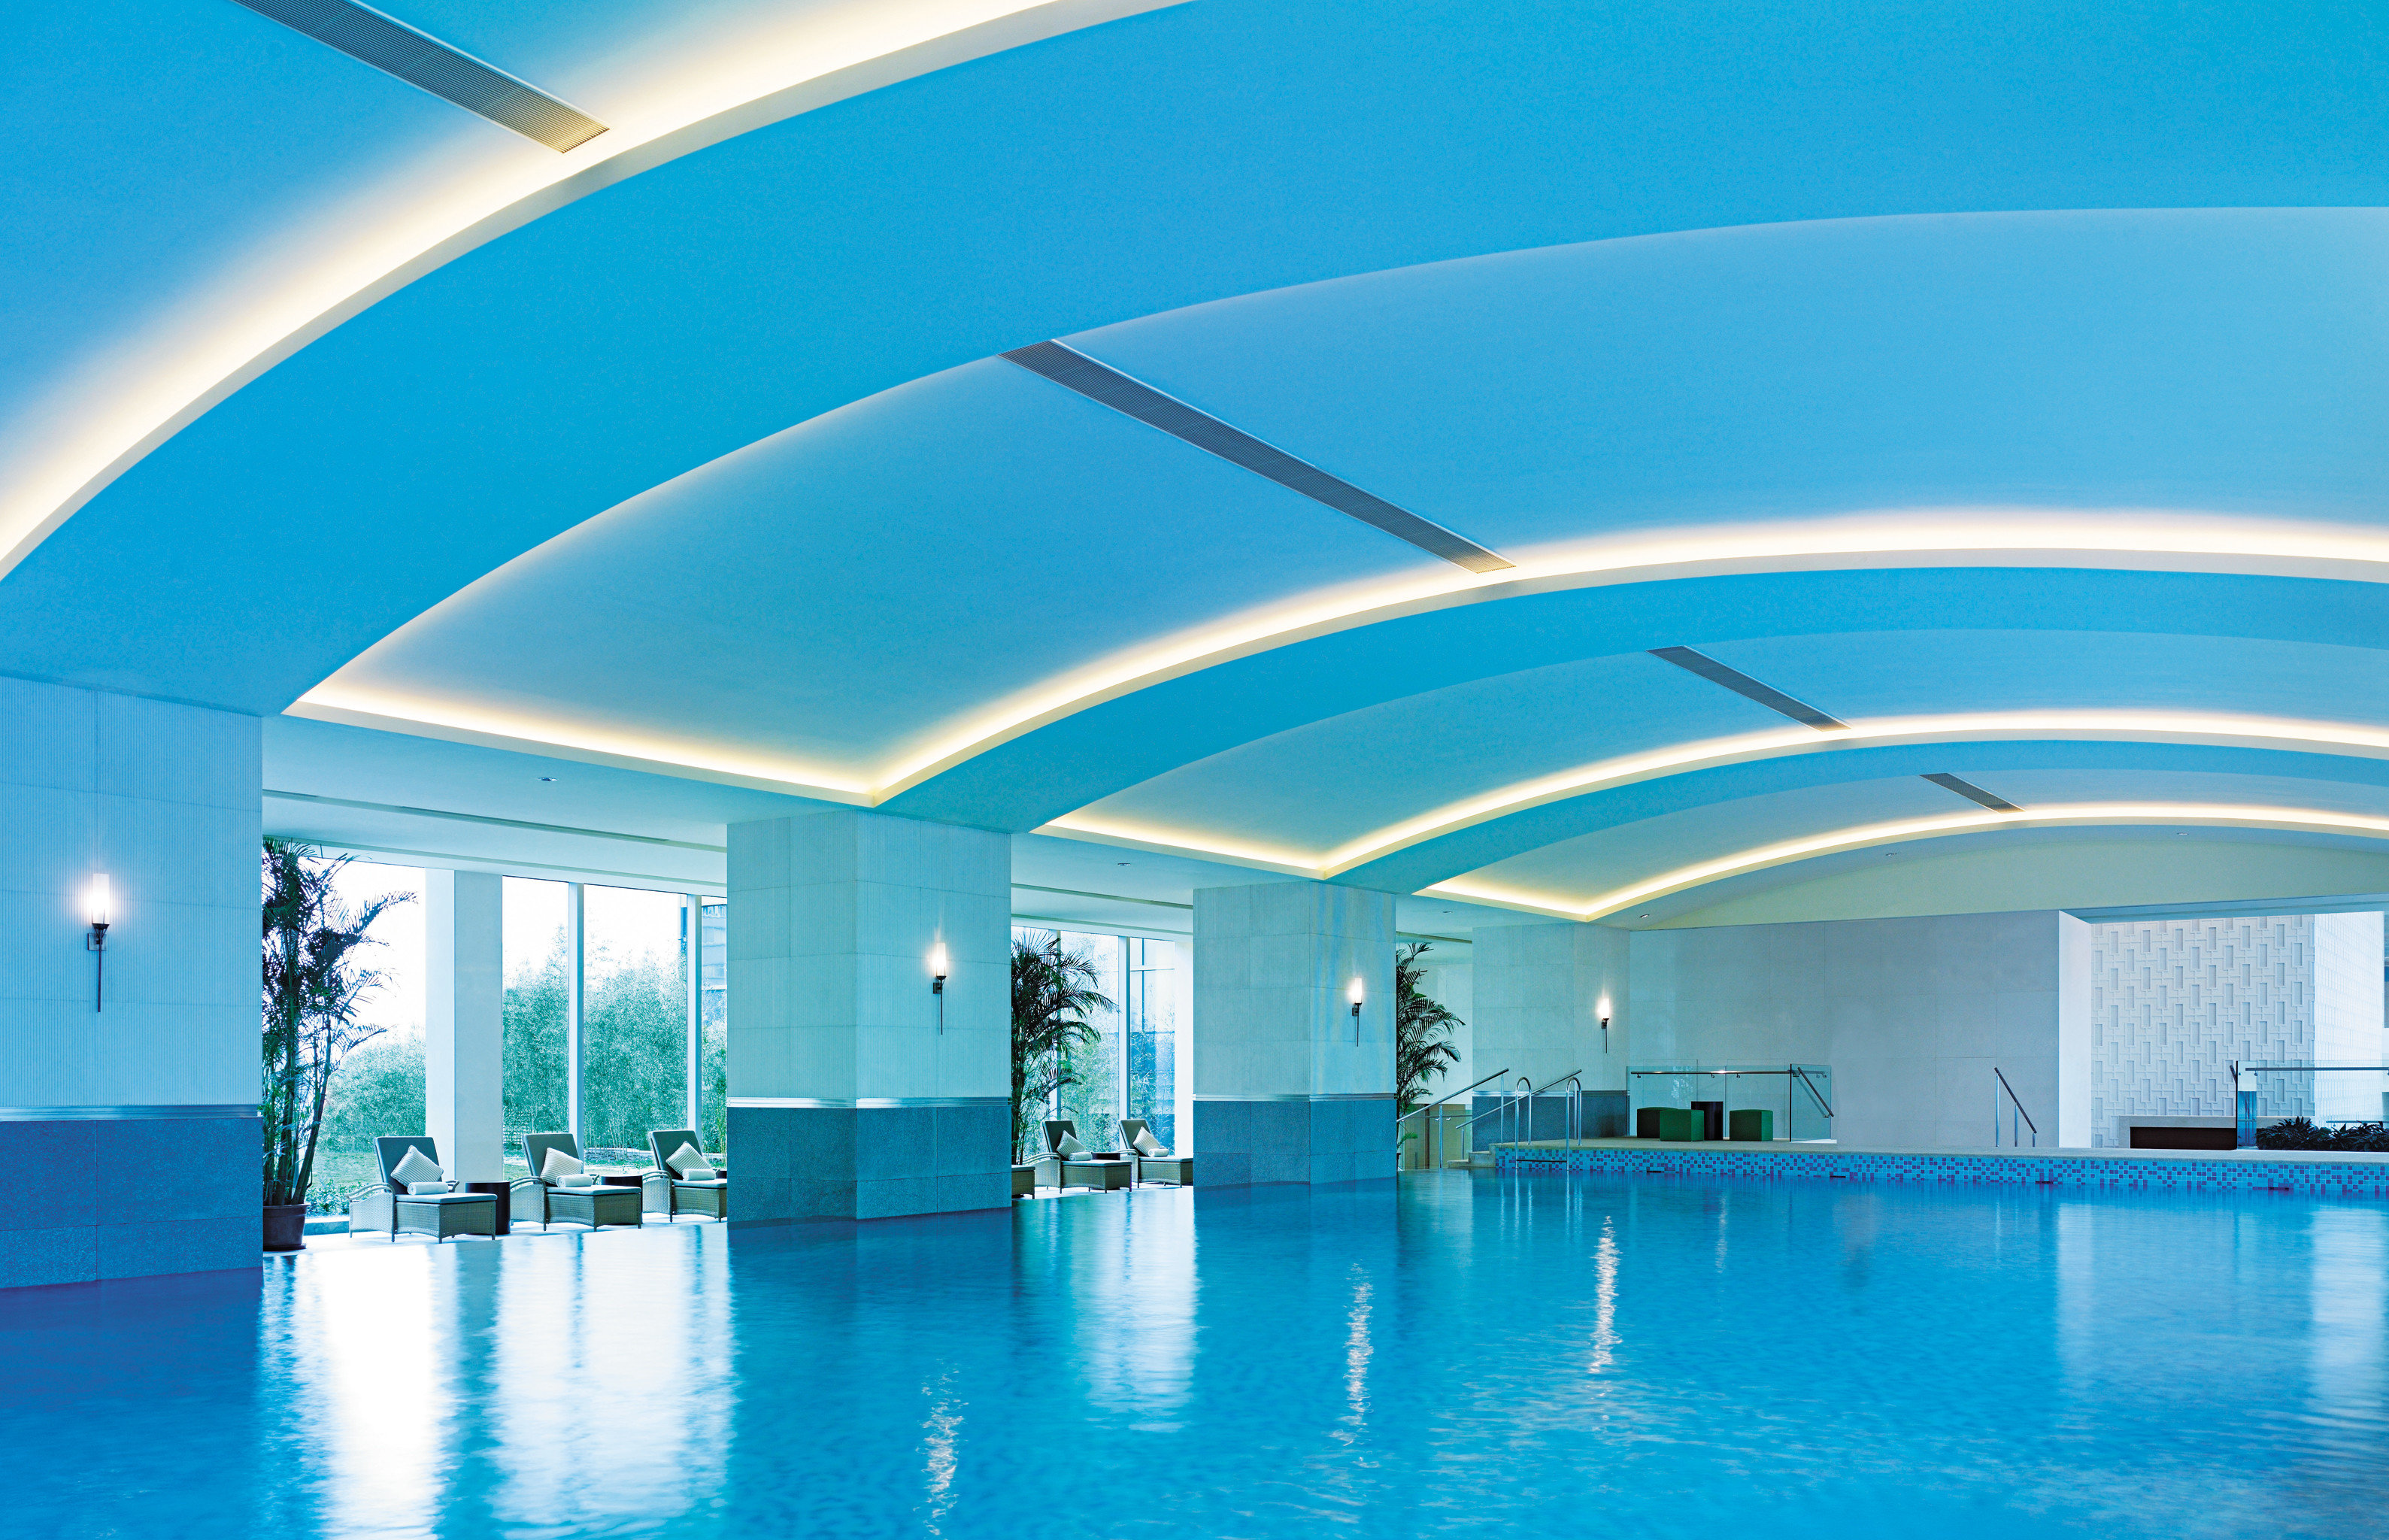 Lounge Luxury Modern Pool swimming pool leisure blue Architecture leisure centre daylighting convention center headquarters